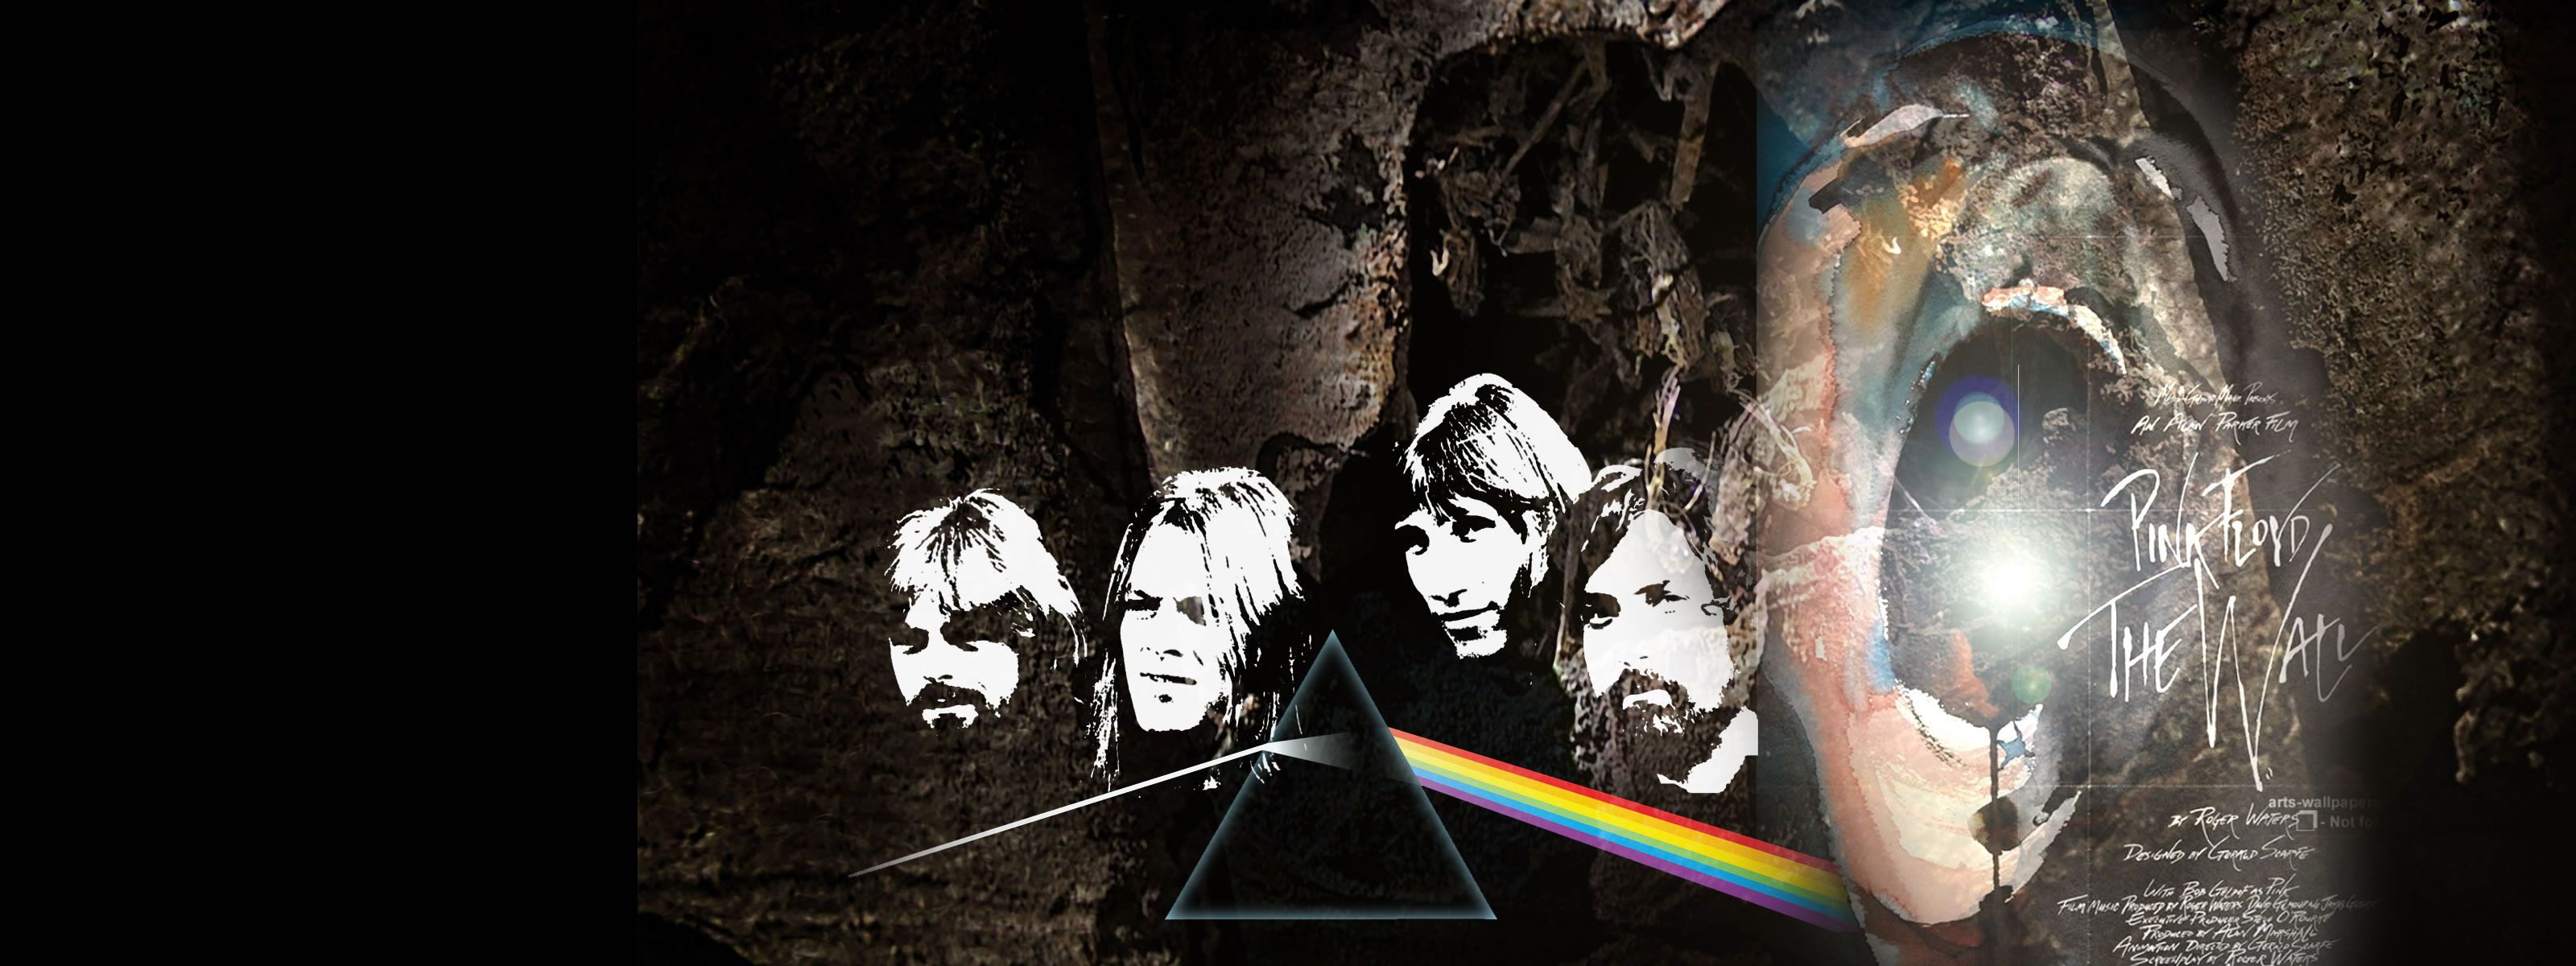 hd wallpapers scream against the wall under pinkfloyd